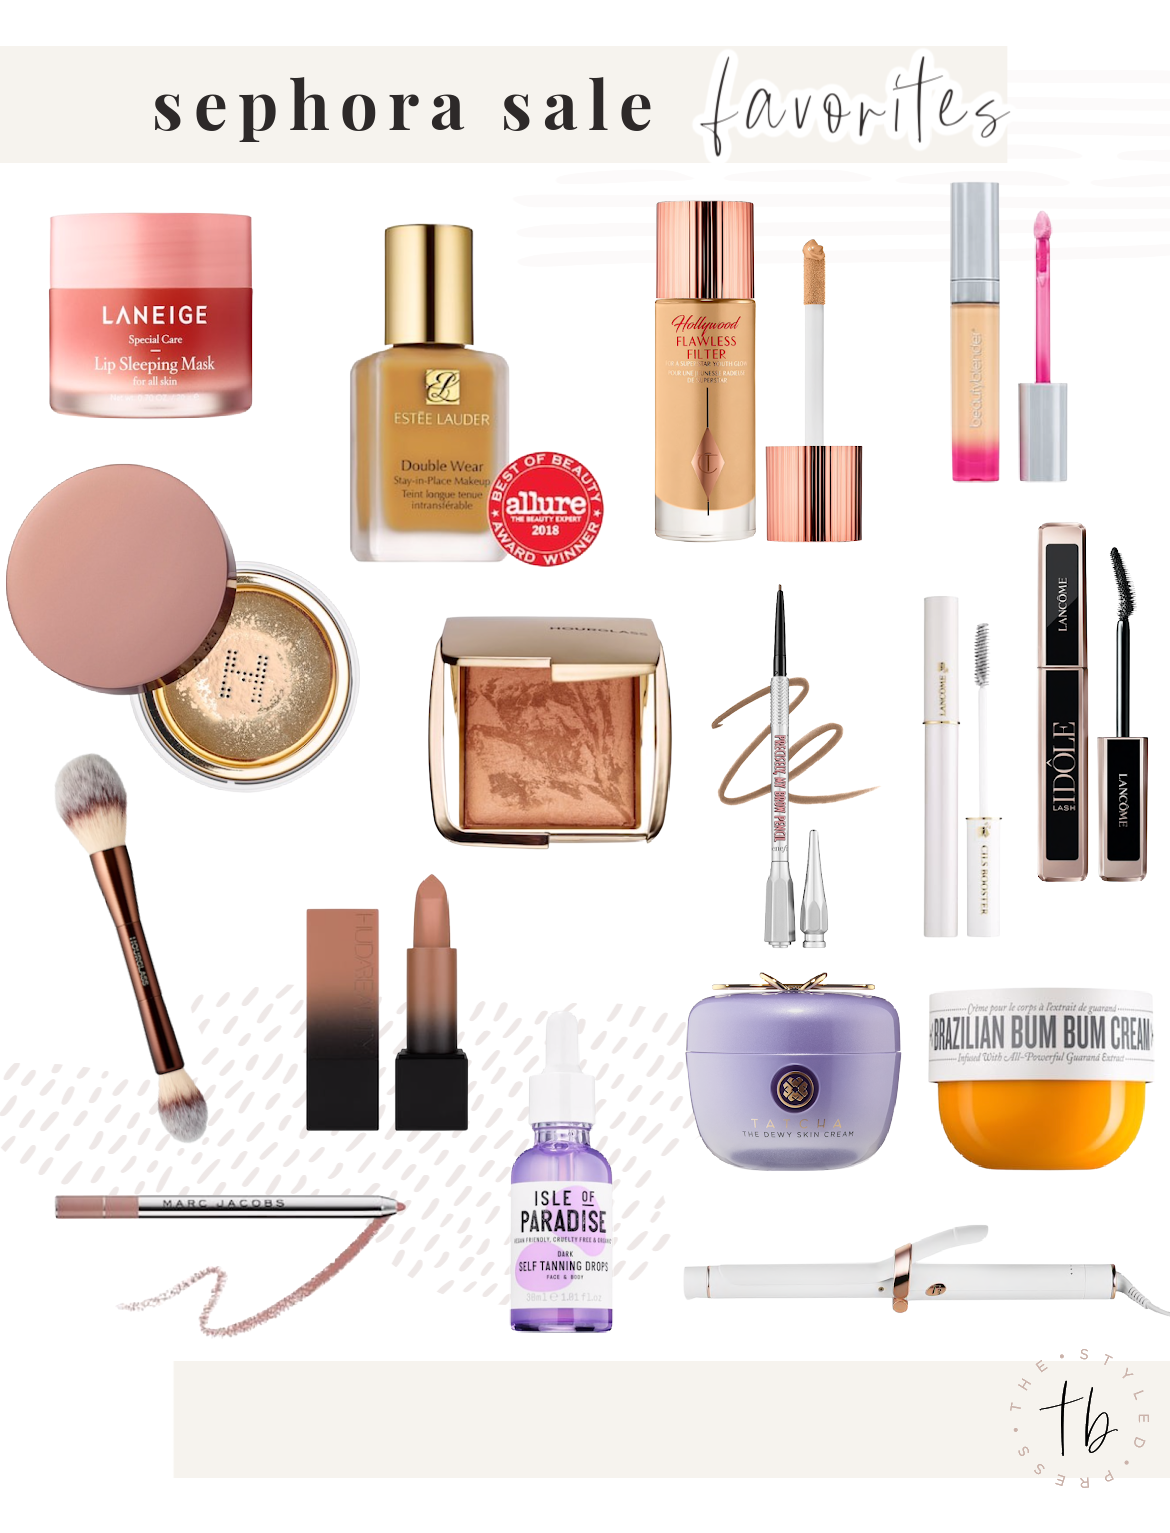 sephora spring savings event, sephora favorites